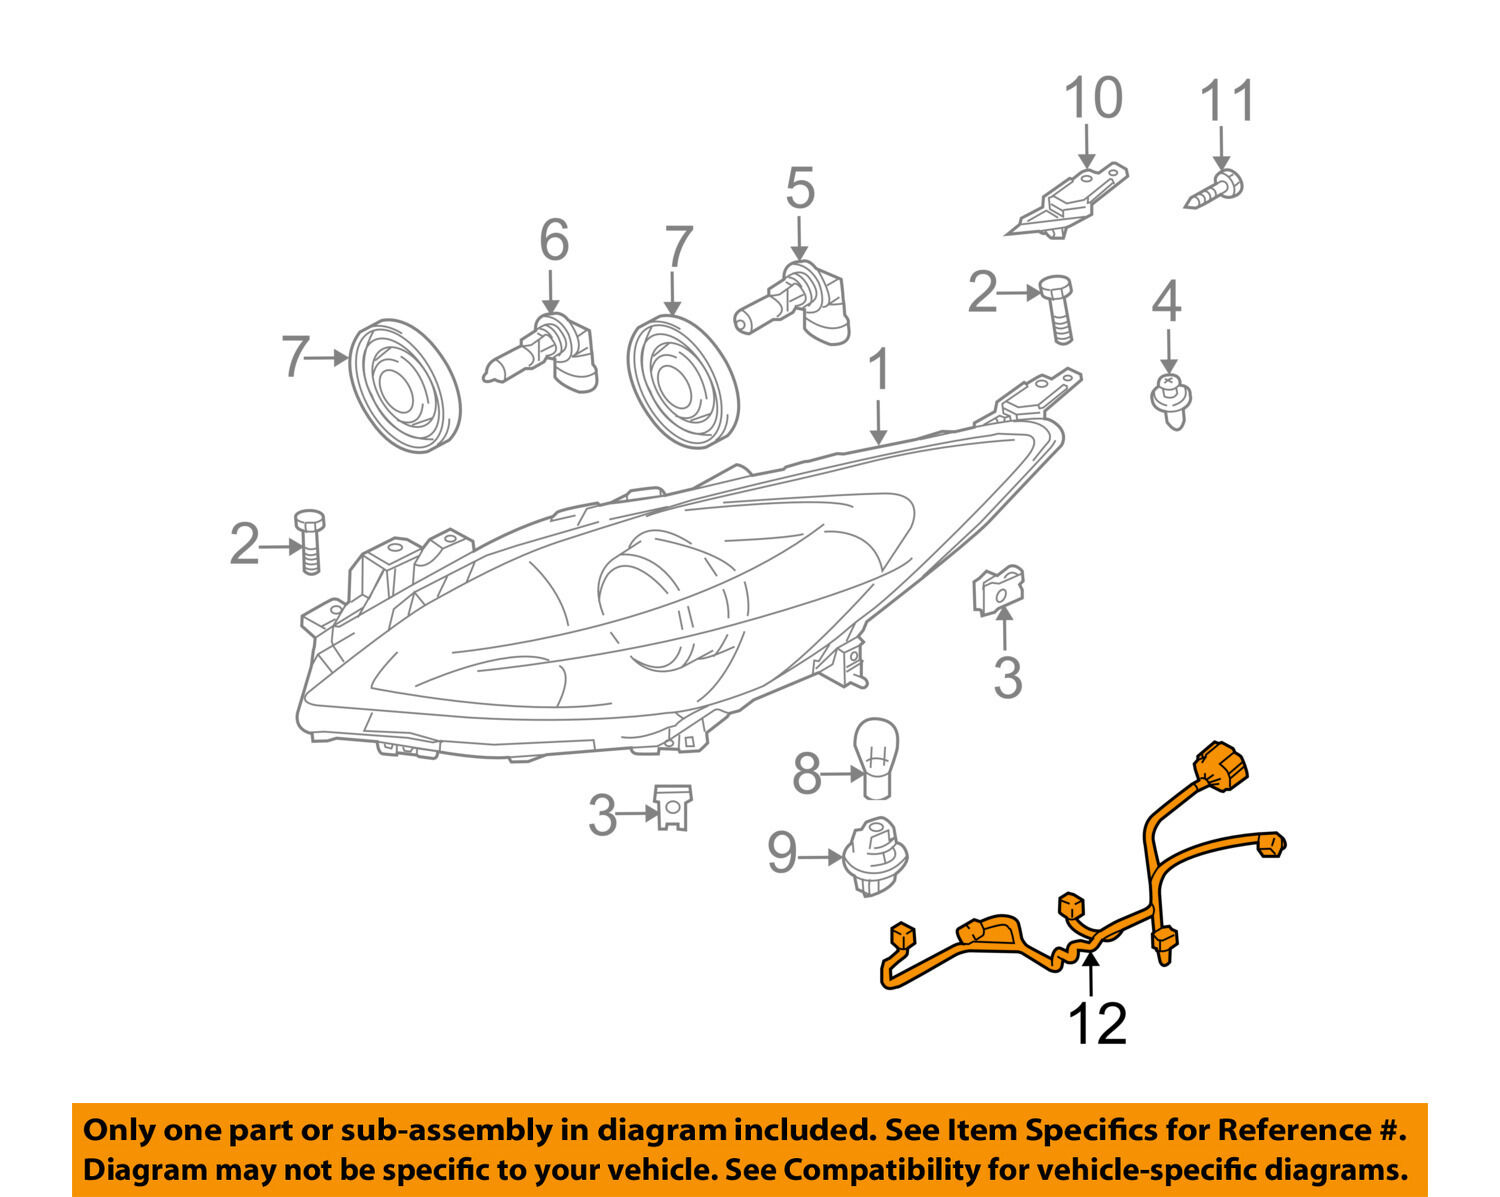 Mazda Oem 10 12 3 Headlight Head Light Lamp Harness Bbm4510k6 Cx 9 Wiring Schematic 1 Of 2only Available